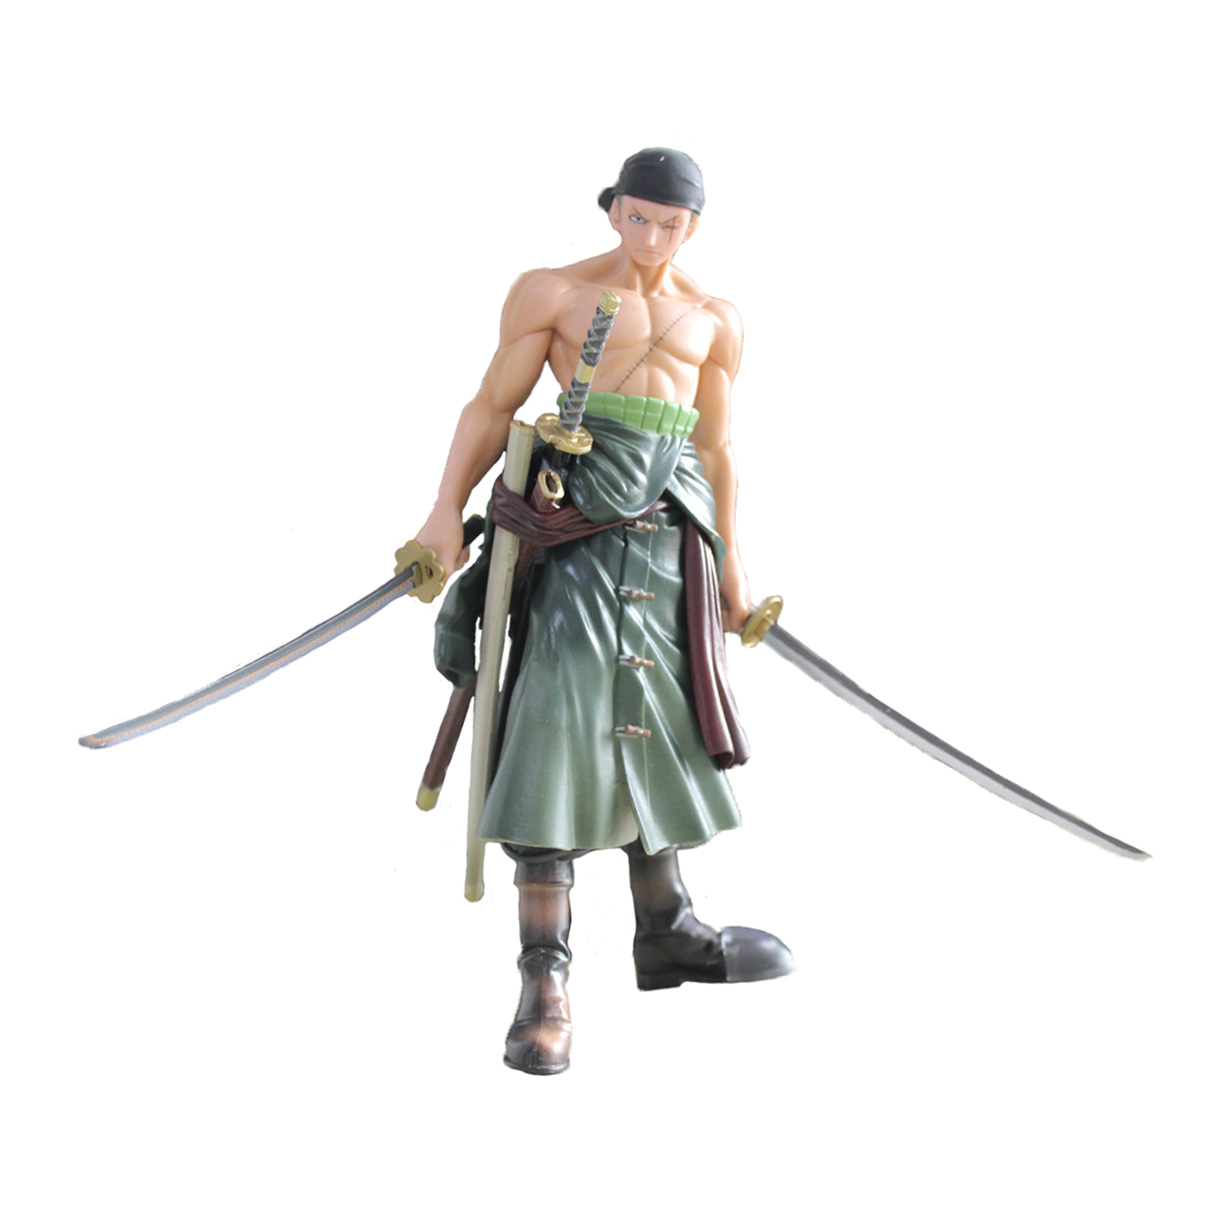 Chanycore One Piece New World  Anime Figuarts Zero Roronoa Zoro 29cm Action Figure PVC Boxed Limit Model Garage Kits Kids Toys anime one piece zoro and dracula mihawk model garage kit pvc aaction figure classic variable action toy doll